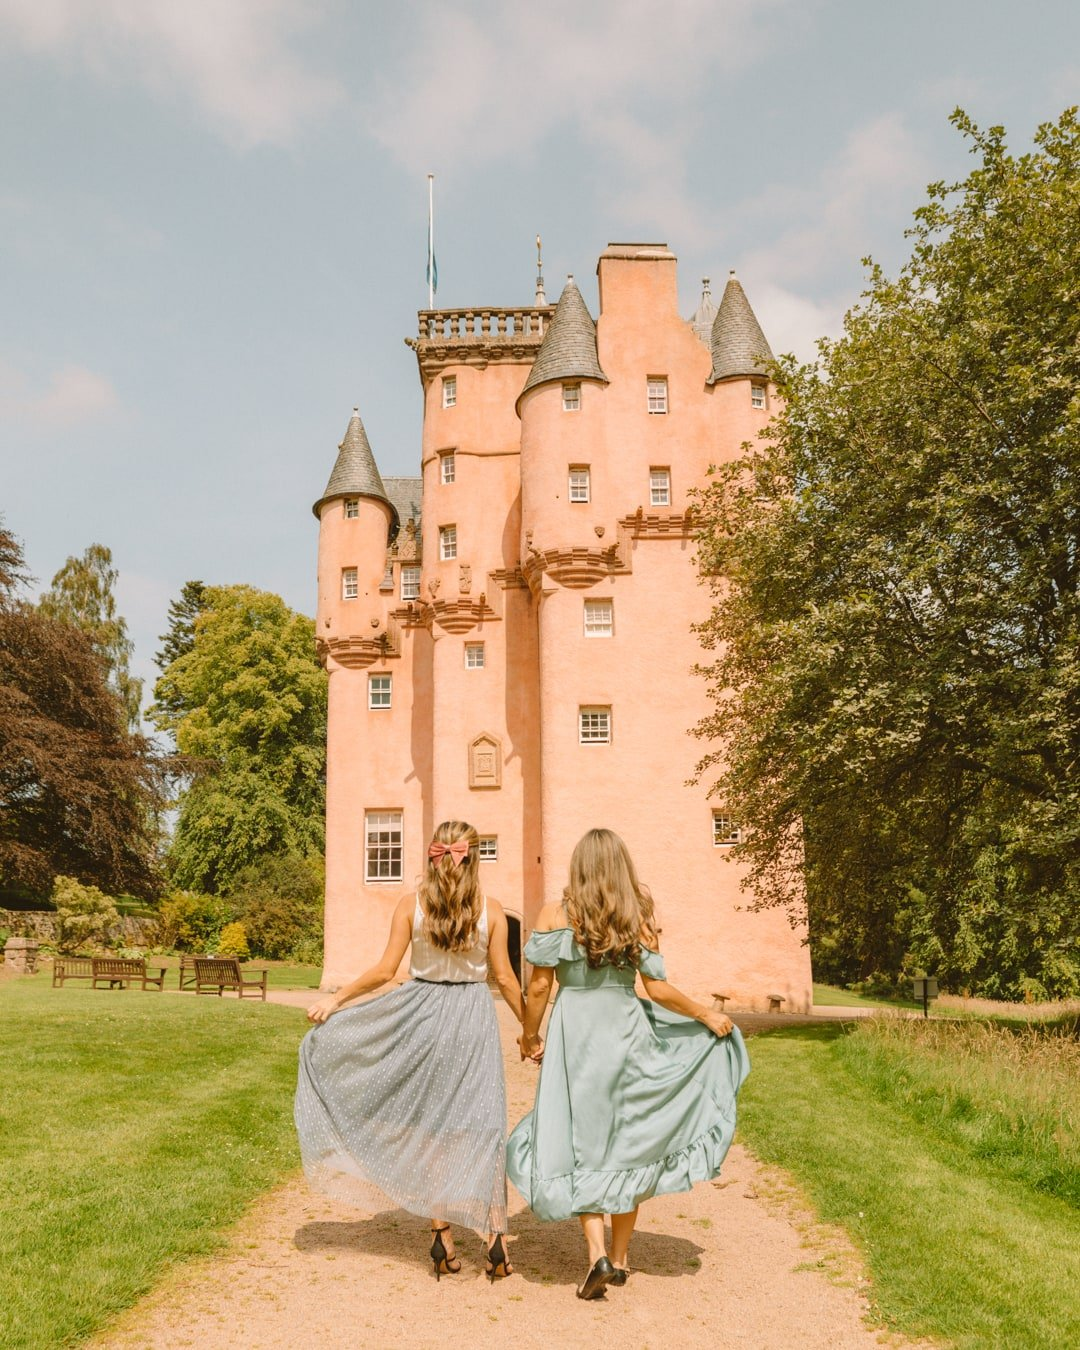 Most Instagrammable Places in Scotland